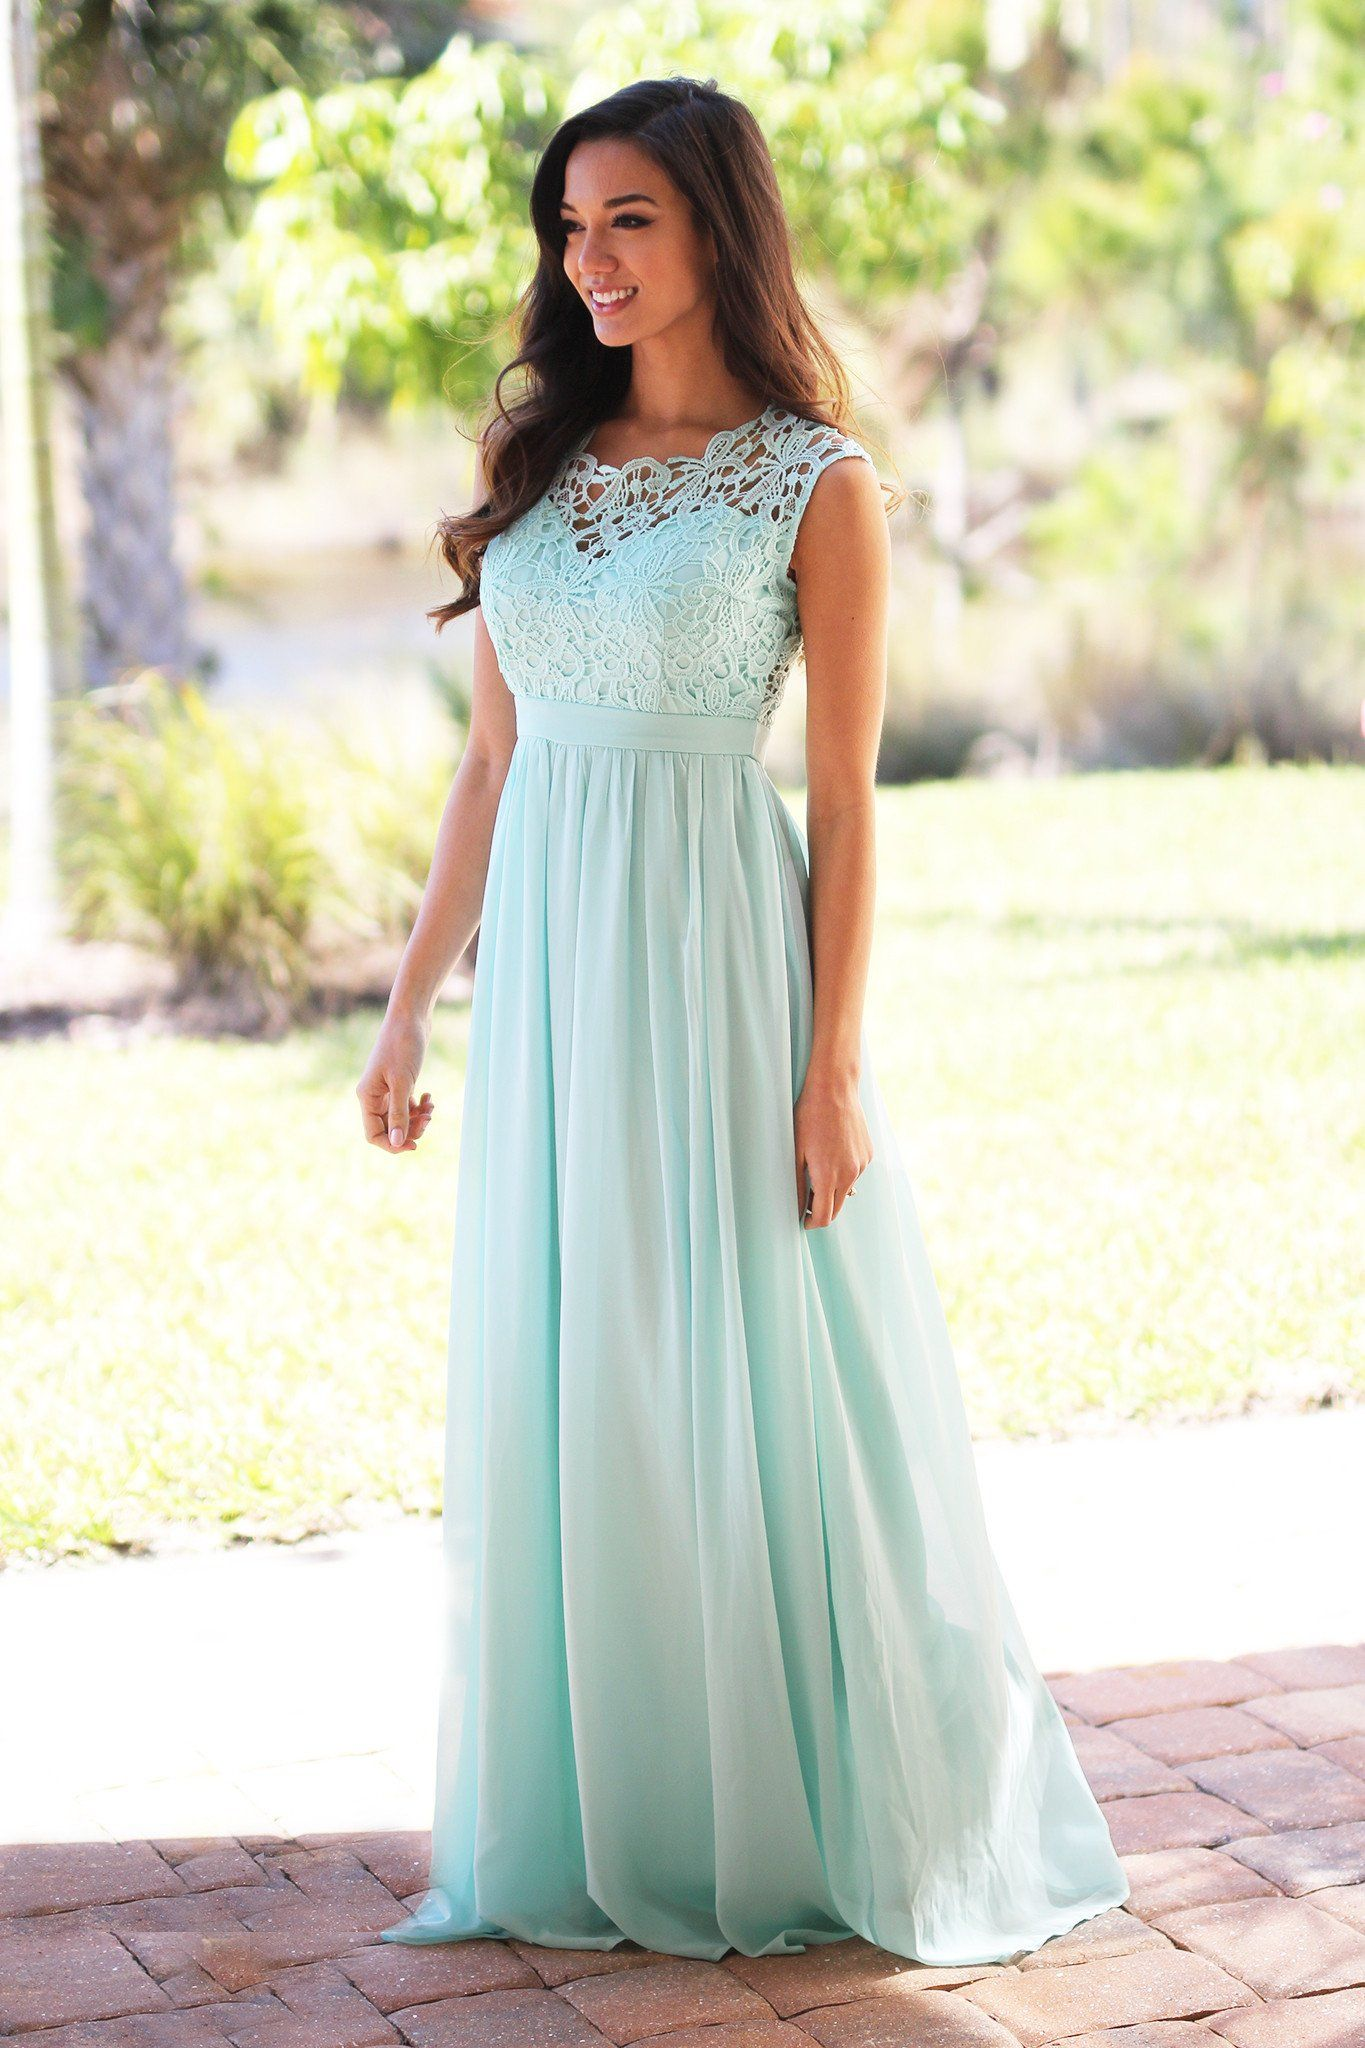 Mint Crochet Maxi Dress with Tulle Back | Maxi dresses, Wedding and ...